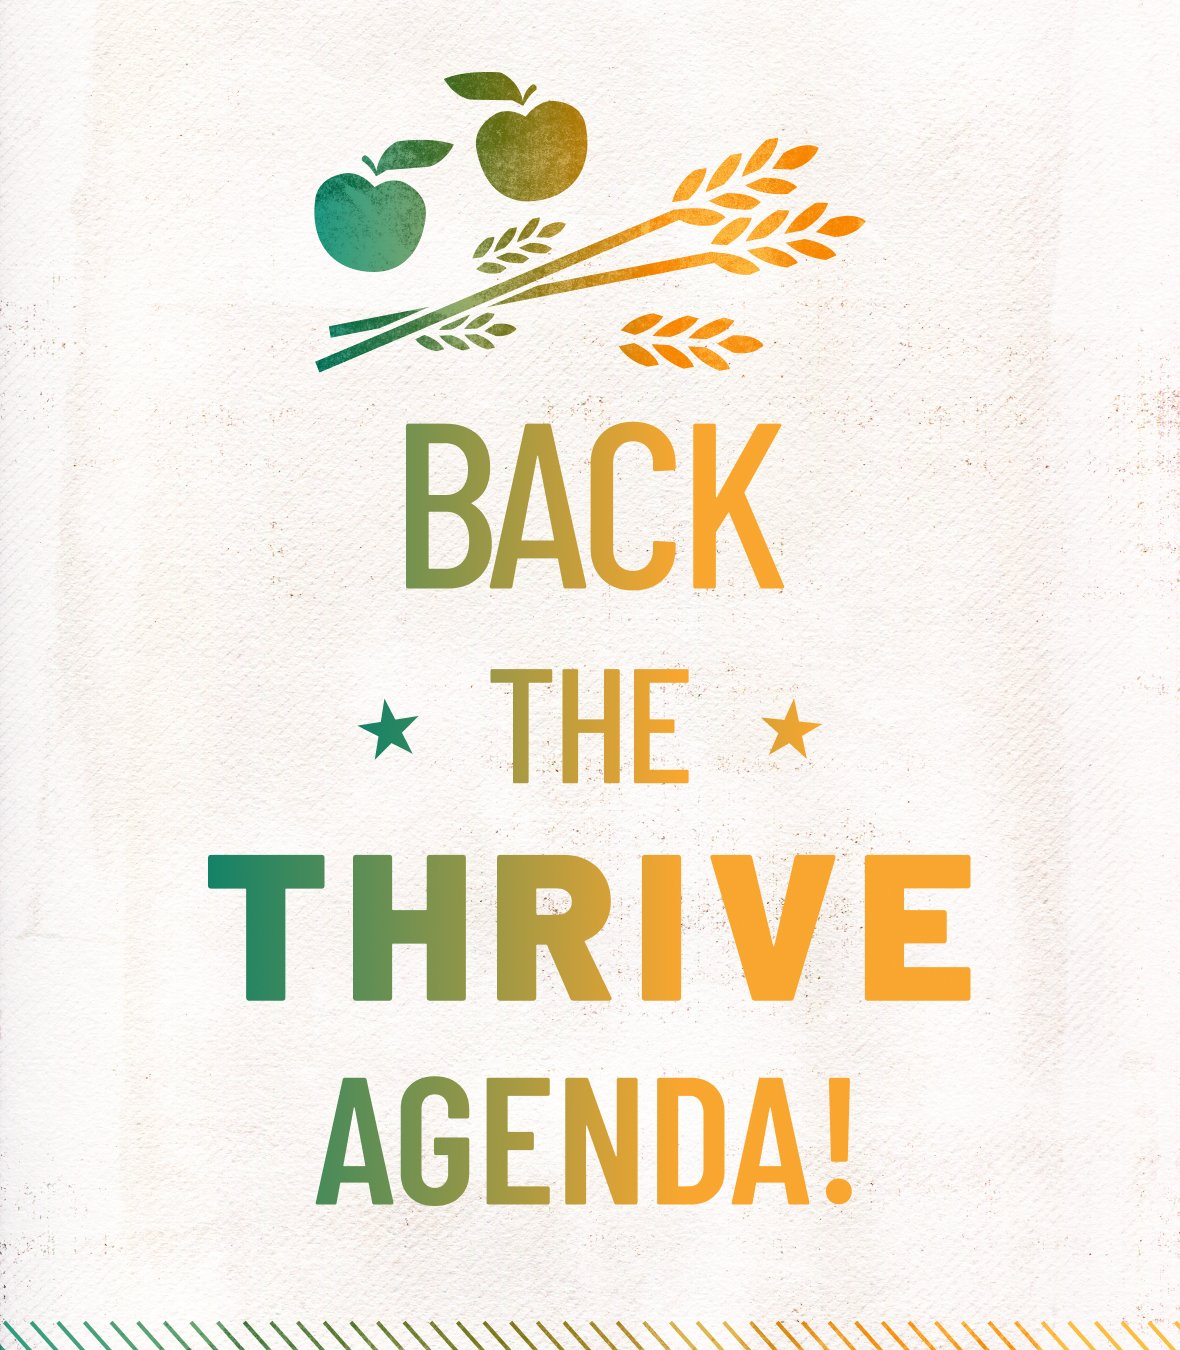 Time to Thrive - agenda for just and green recovery from coronavirus